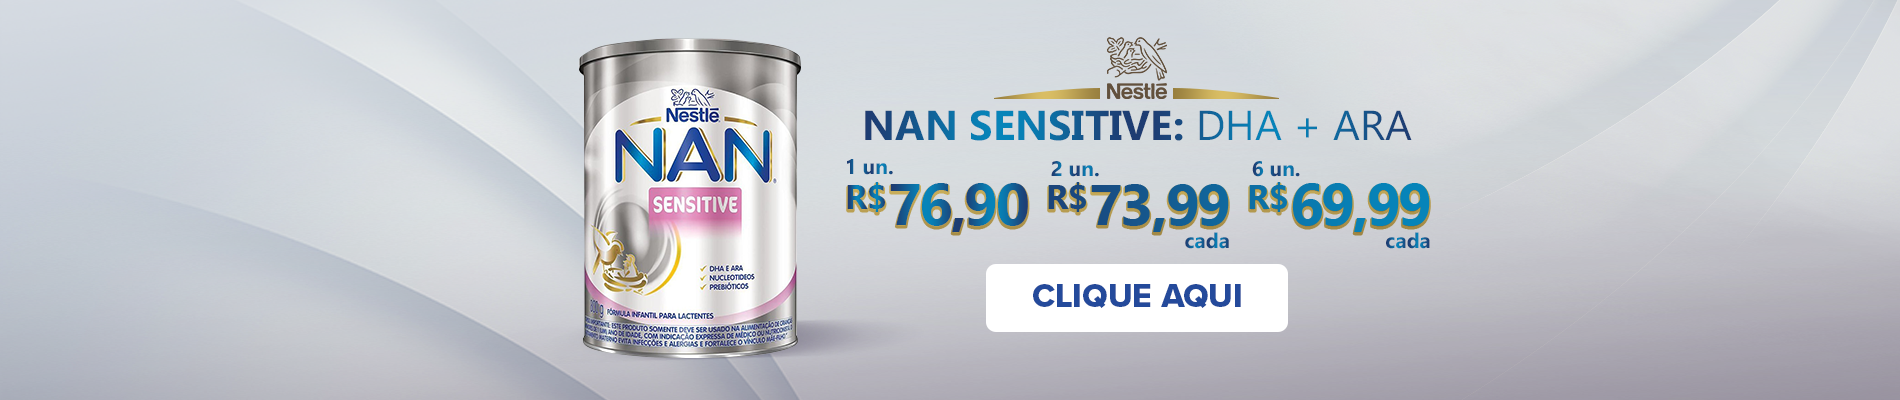 NAN SENSITIVE